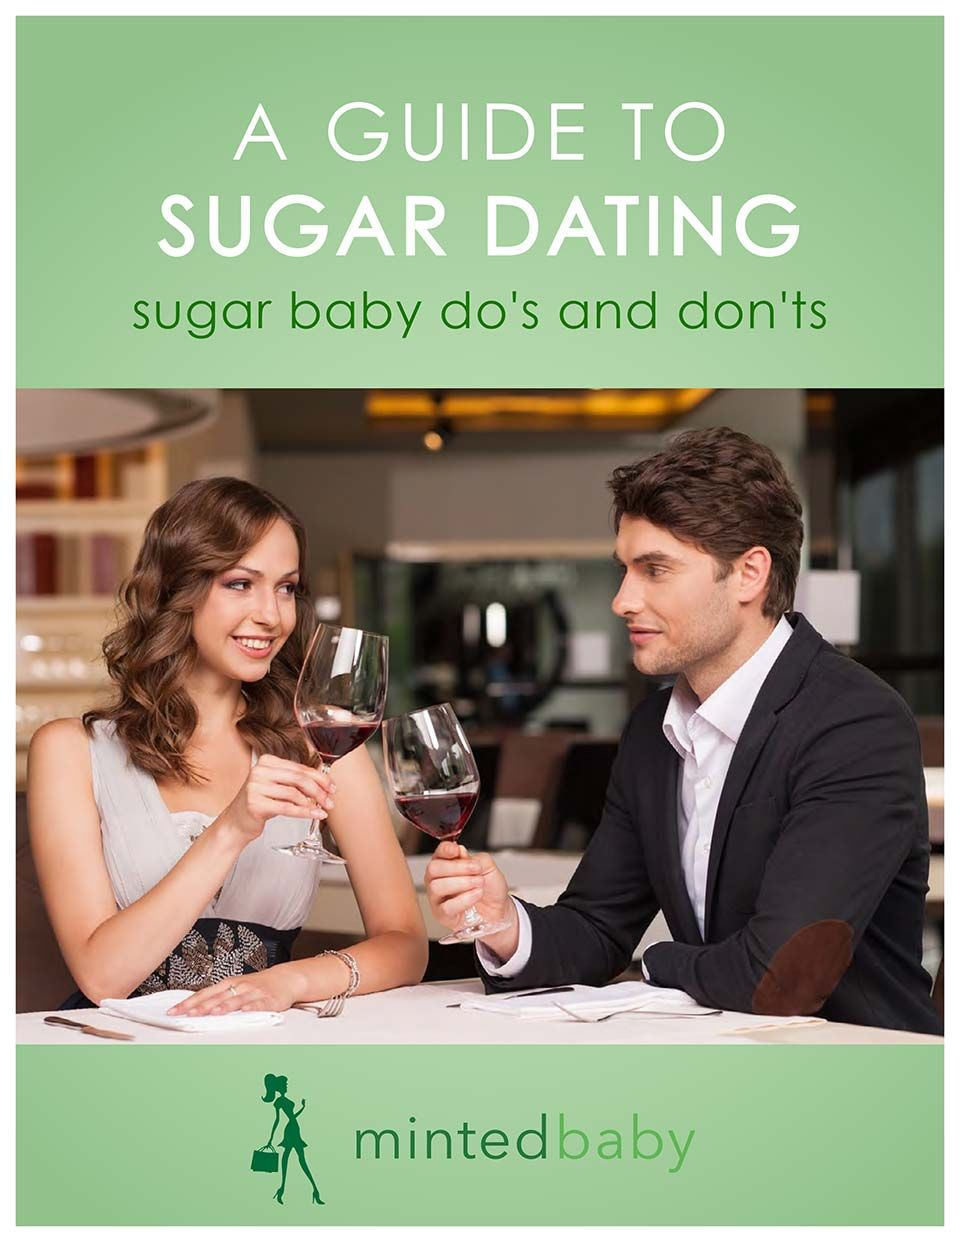 sugar daddy dating site in pretoria Latest dating site for you to meet rich sugar mummies & rich sugar daddies, get  sugar mummy & daddy  this sugar mama in pretoria, tendani, is rich to pay  you monthly, as well as spend money on you to make you happy.